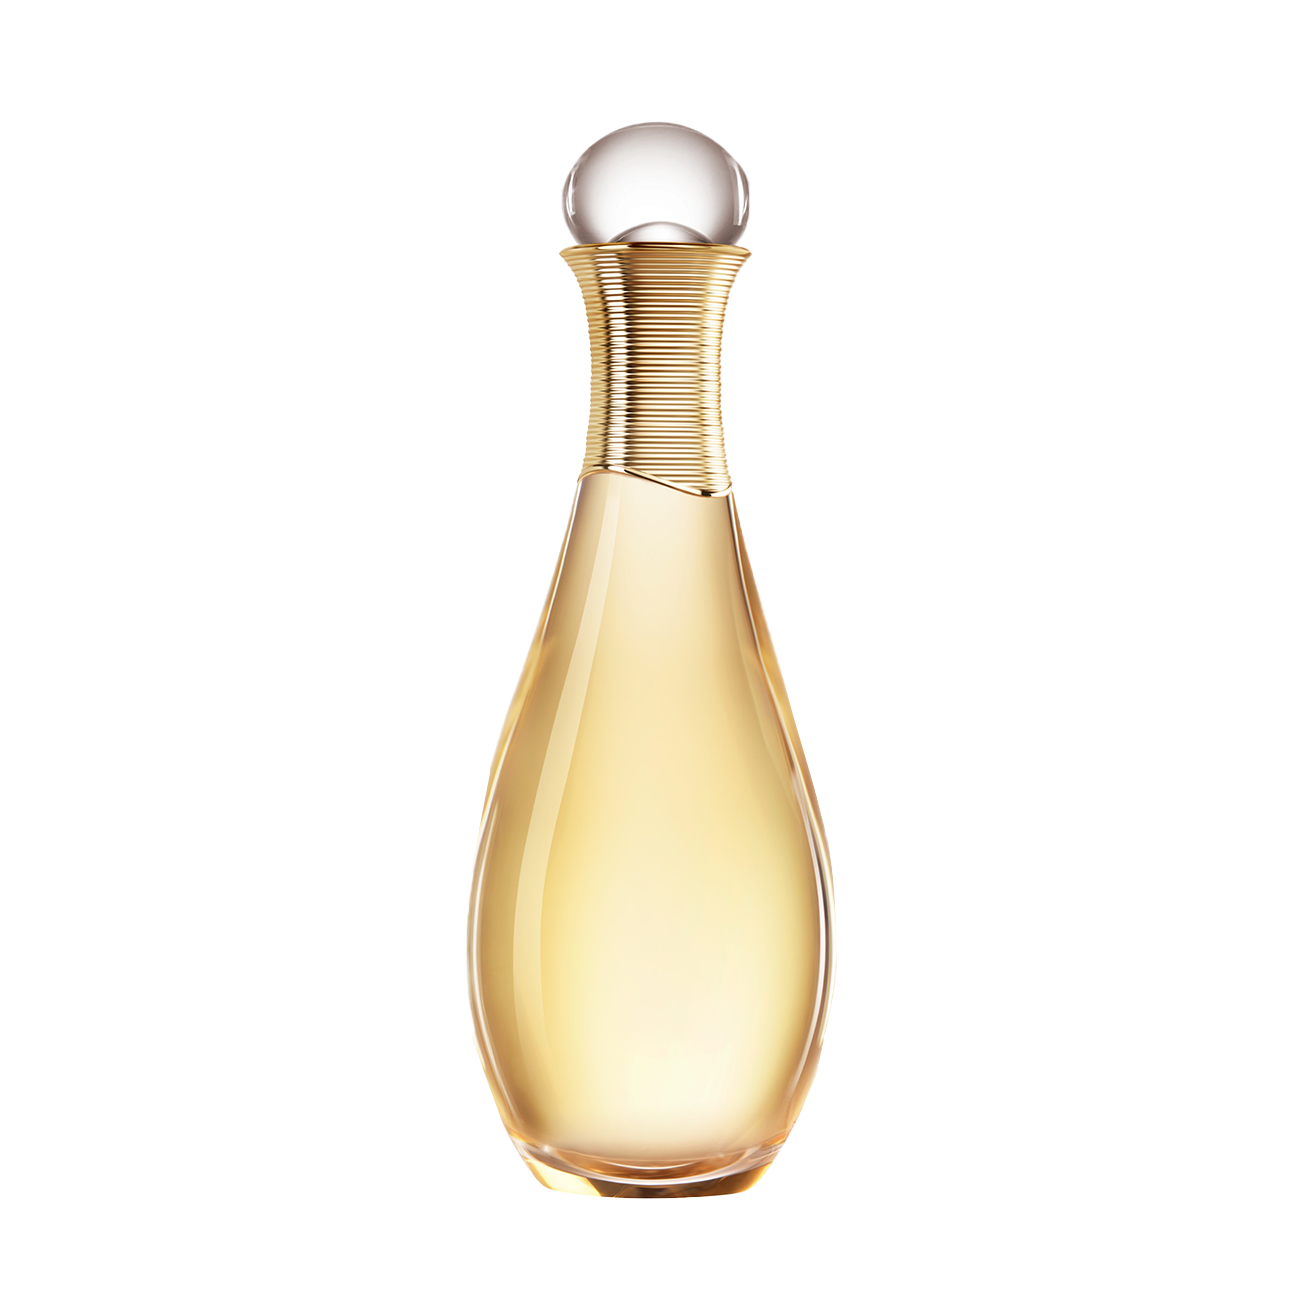 J'ADORE DRY BODY OIL SPRAY 150ml poza